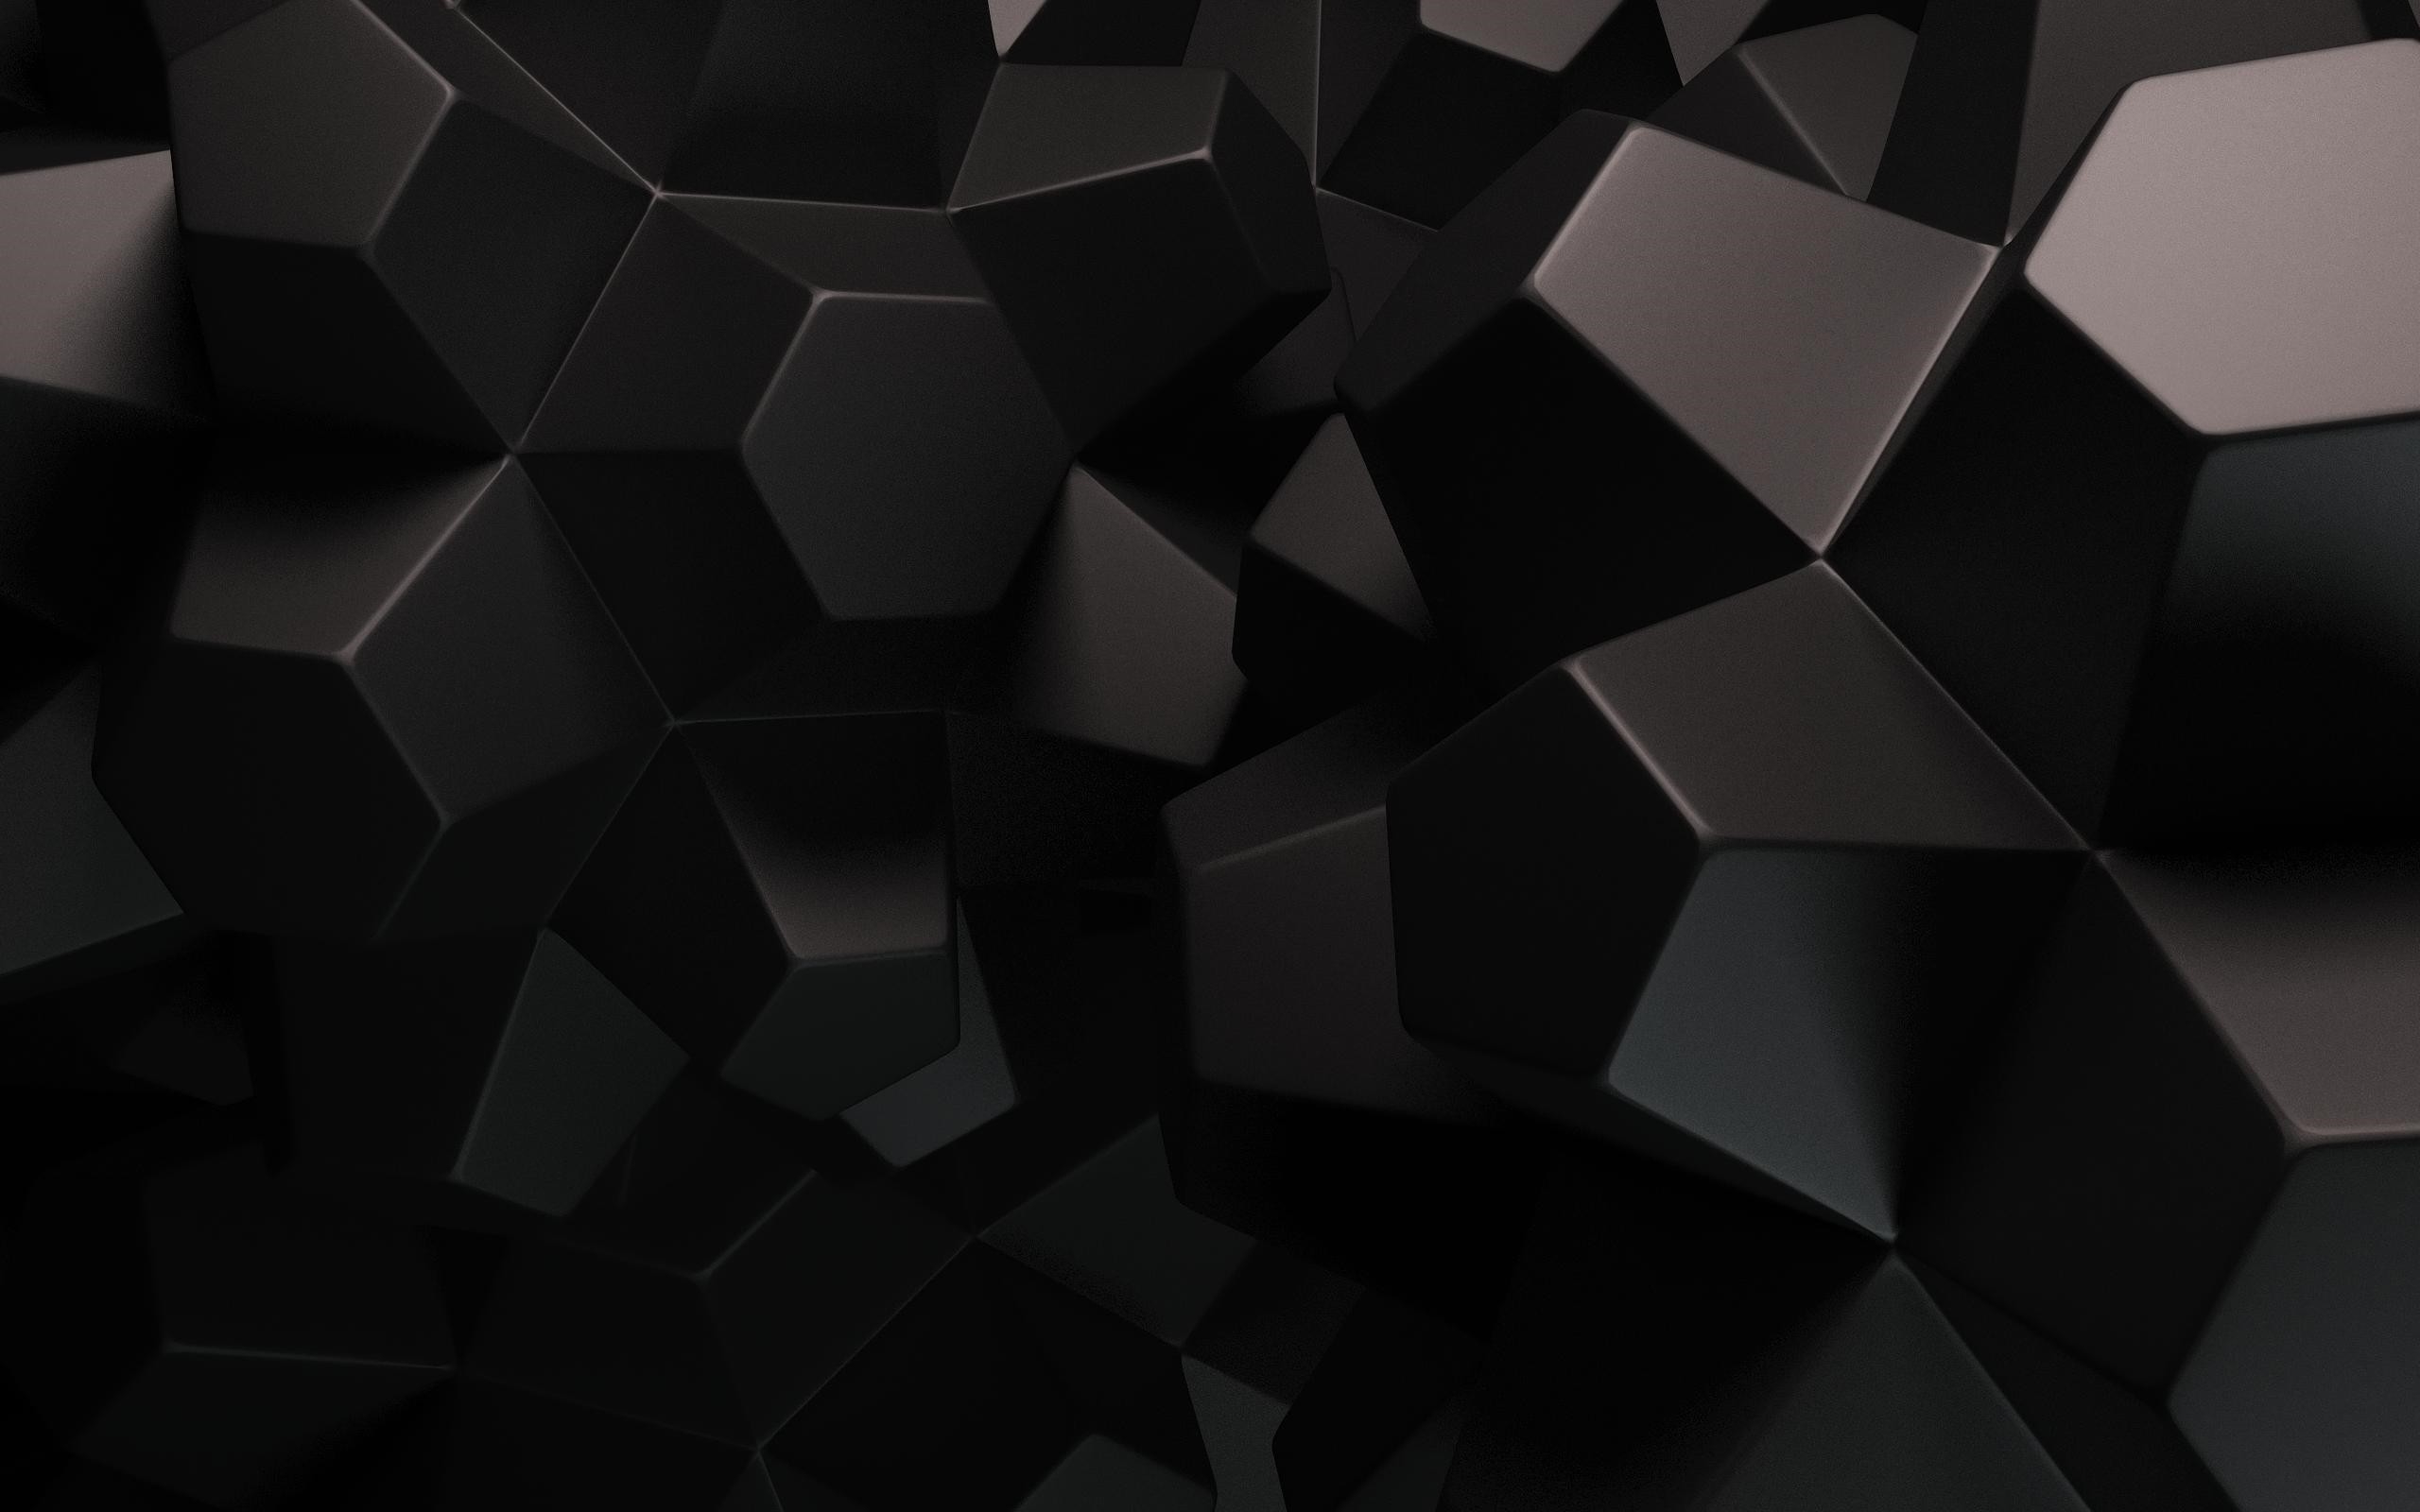 Dark Colorful 3D Wallpapers – dark color 3d chocolate pieces abstract wide